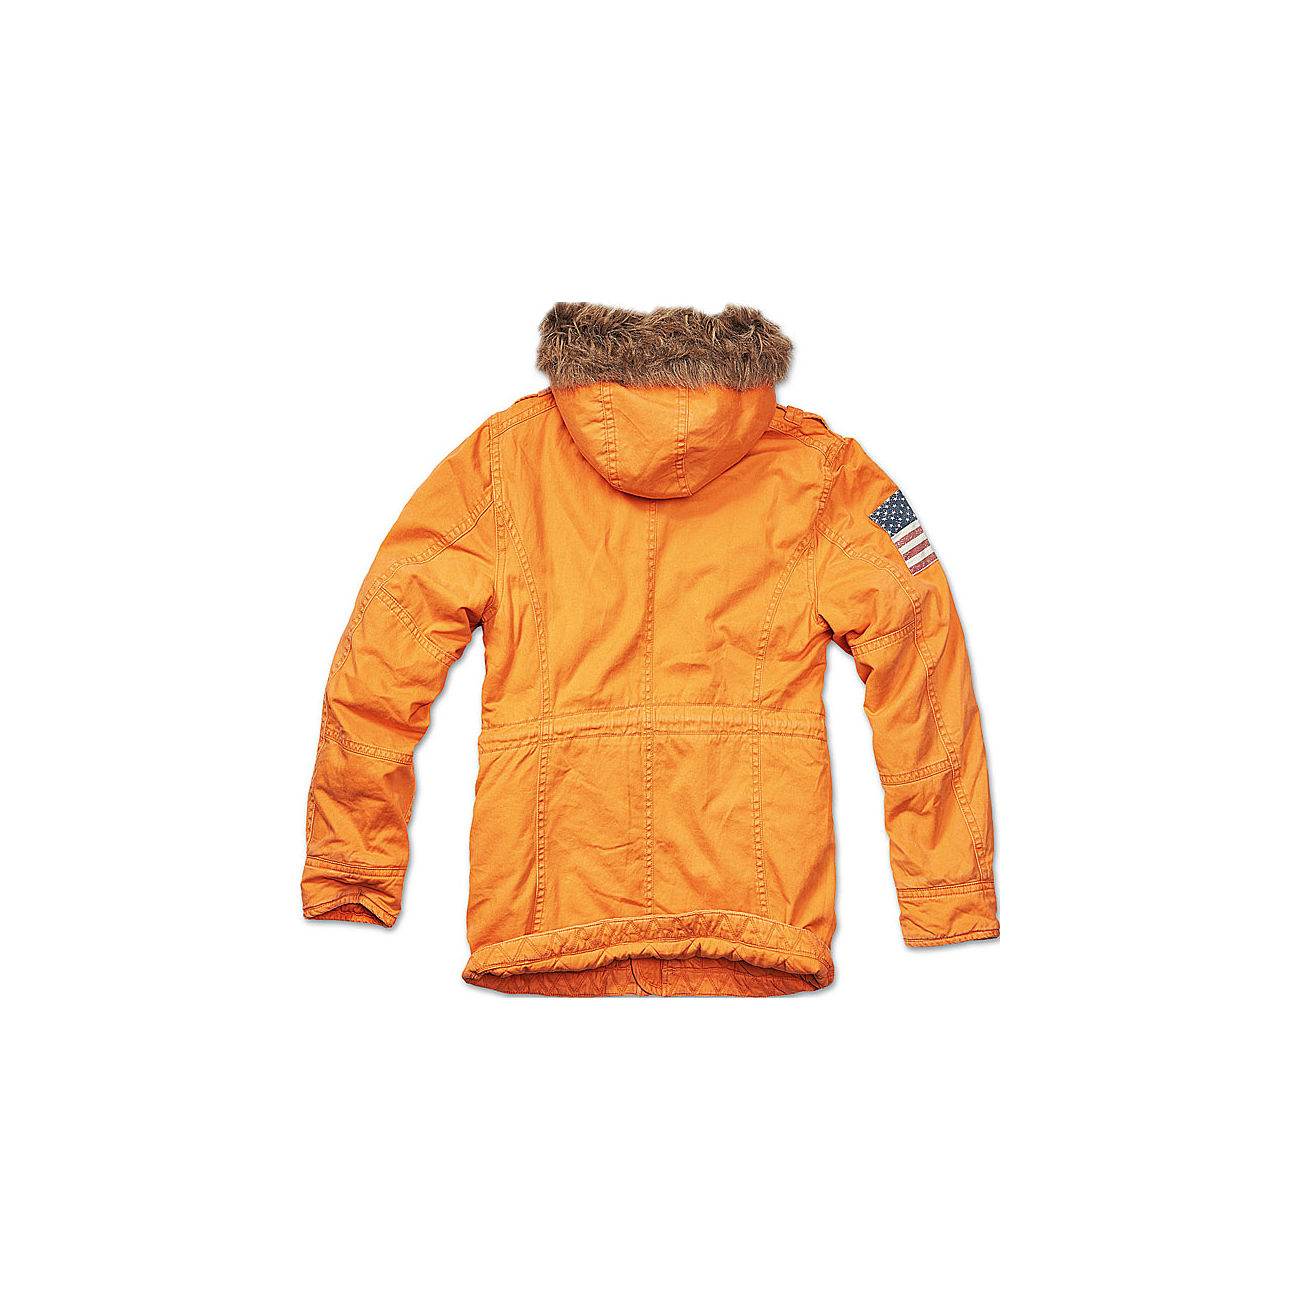 Brandit Jacke Vintage Explorer Stars & Stripes orange 1